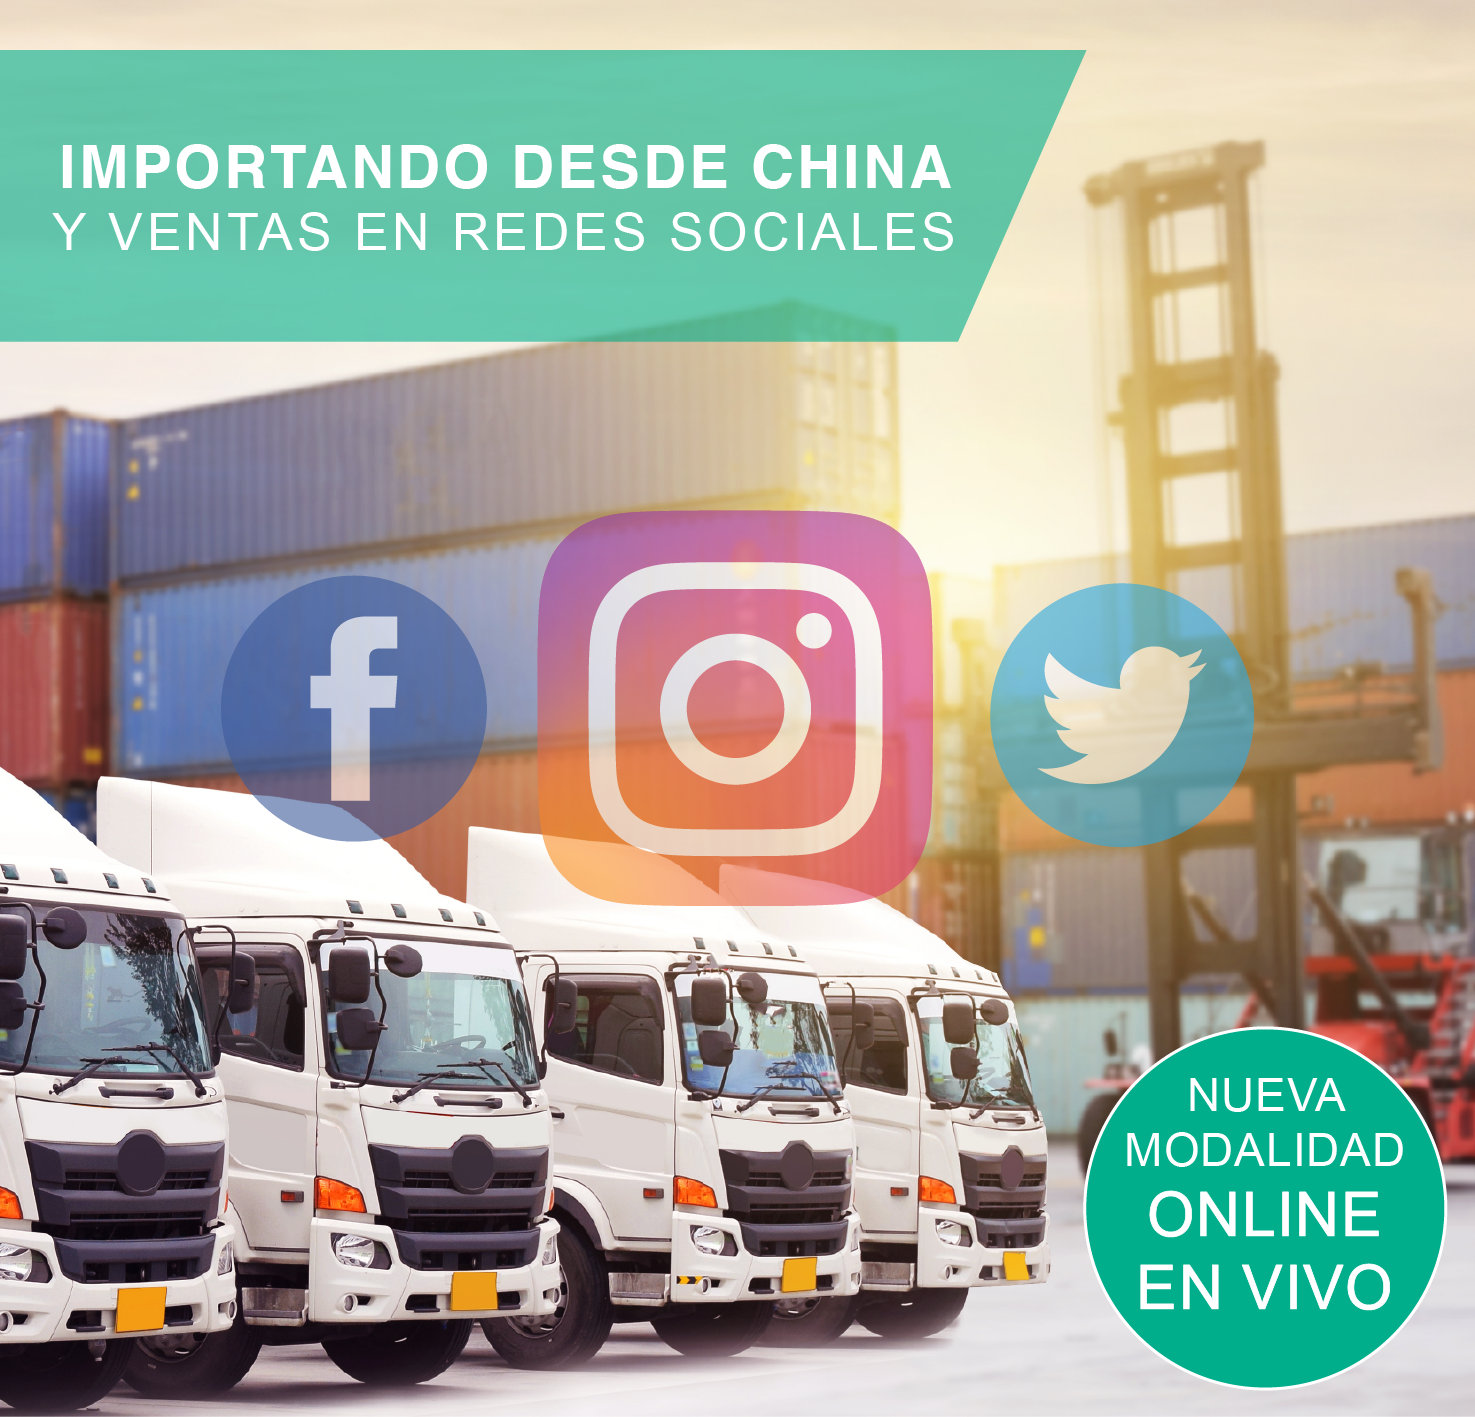 IMPORTANDO DESDE CHINA y VENDIENDO POR REDES SOCIALES